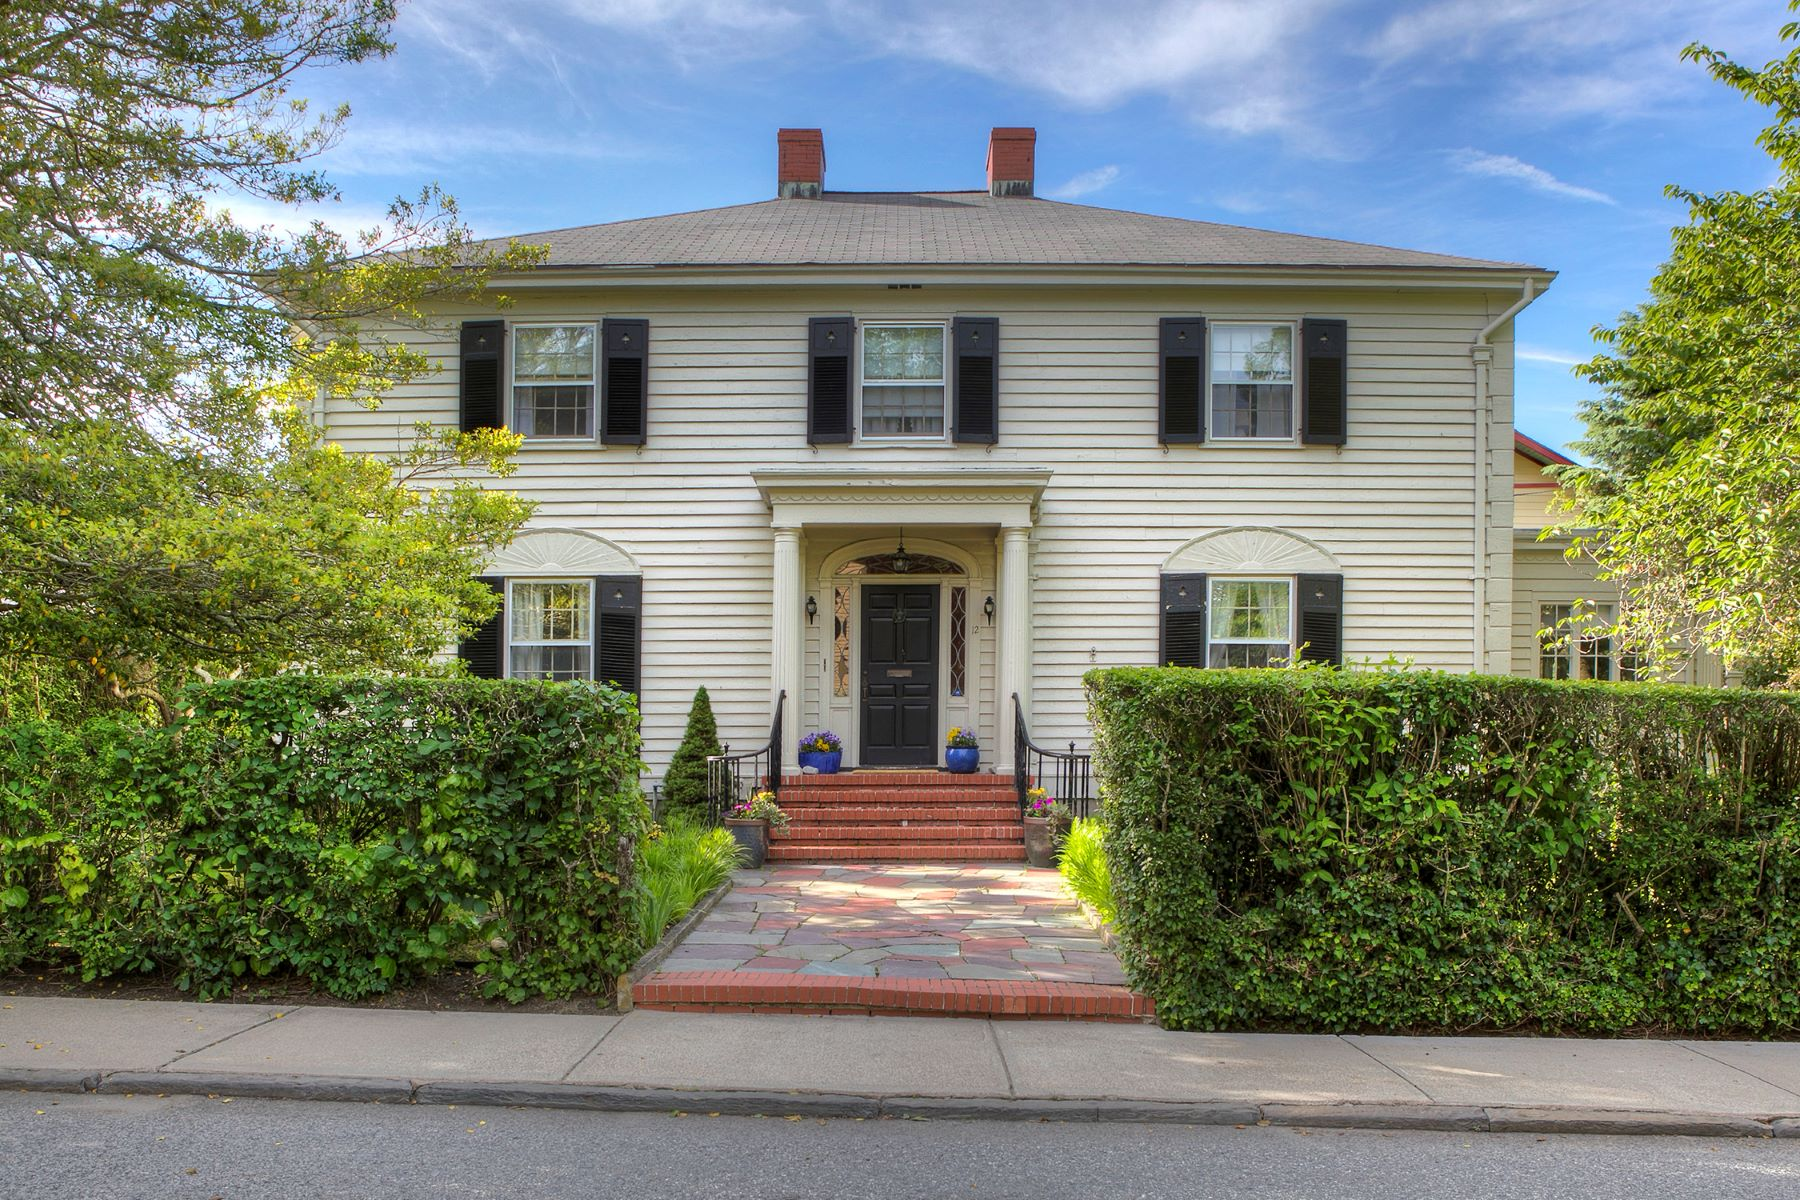 Single Family Homes for Sale at Top of Historic Hill 12 Redwood Street Newport, Rhode Island 02840 United States